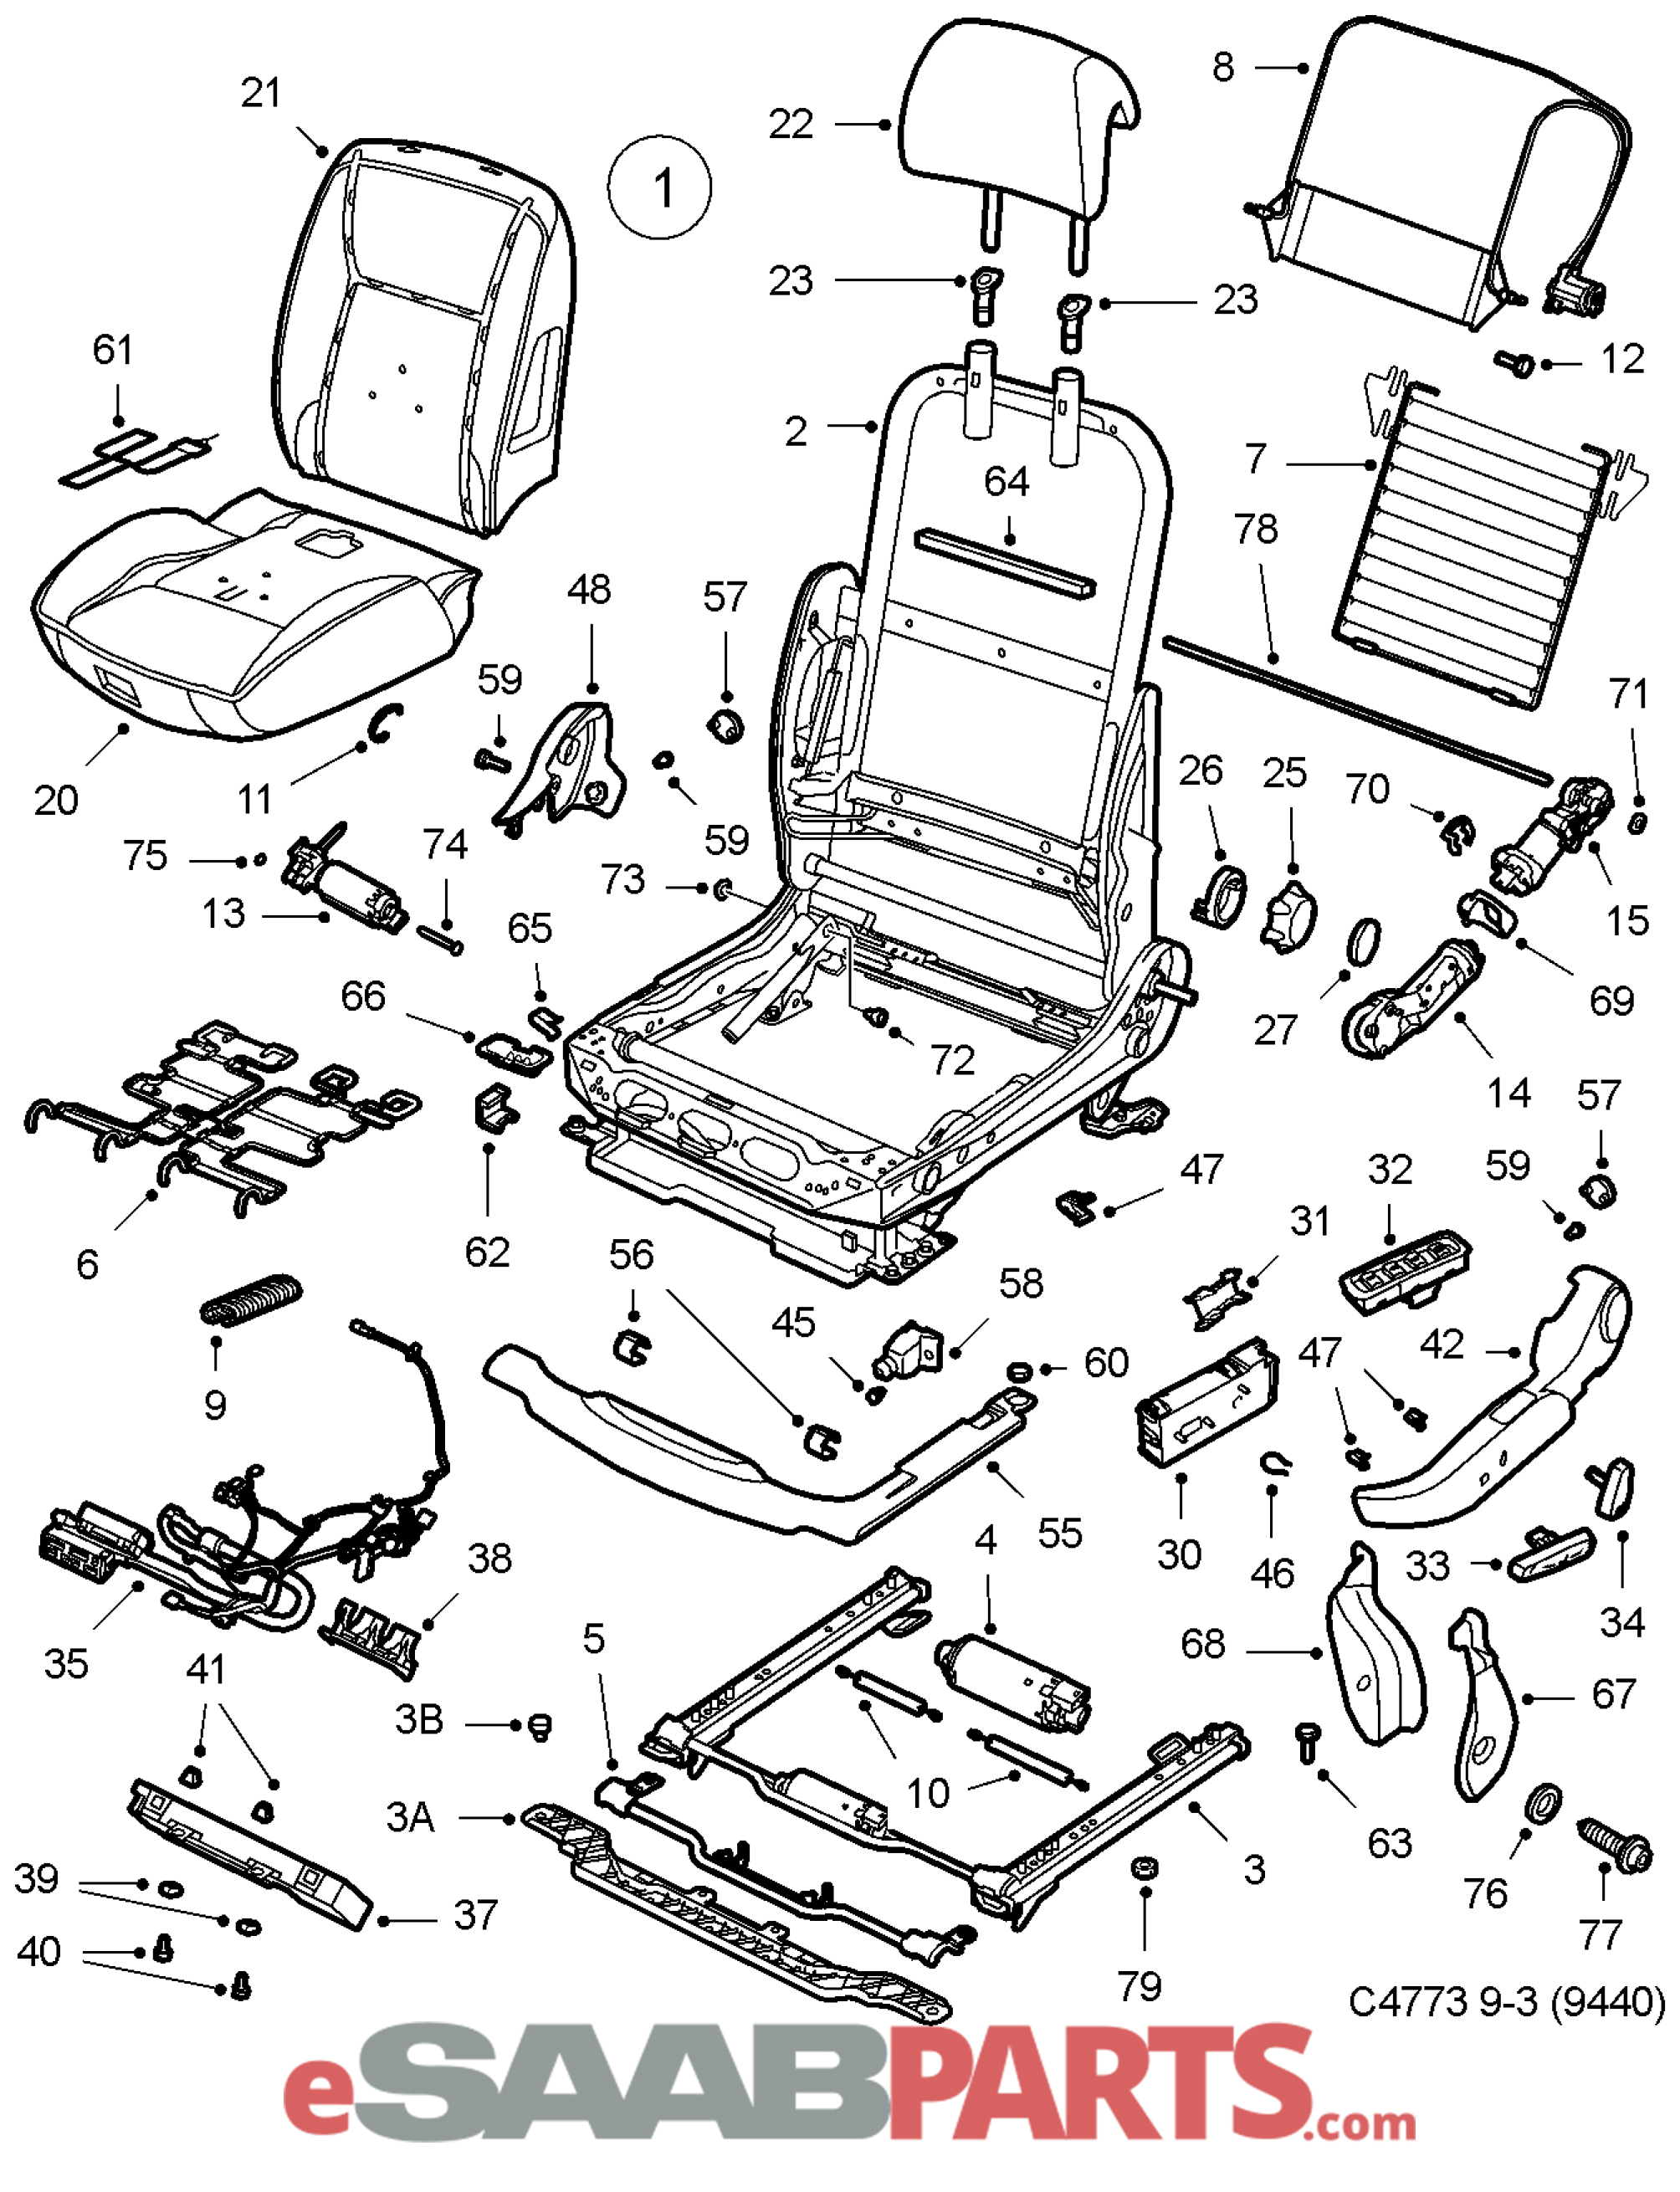 Saab 9 3 Seat Diagram Great Design Of Wiring 95 Heated 2012 Hyundai Sonata Radio Html 2010